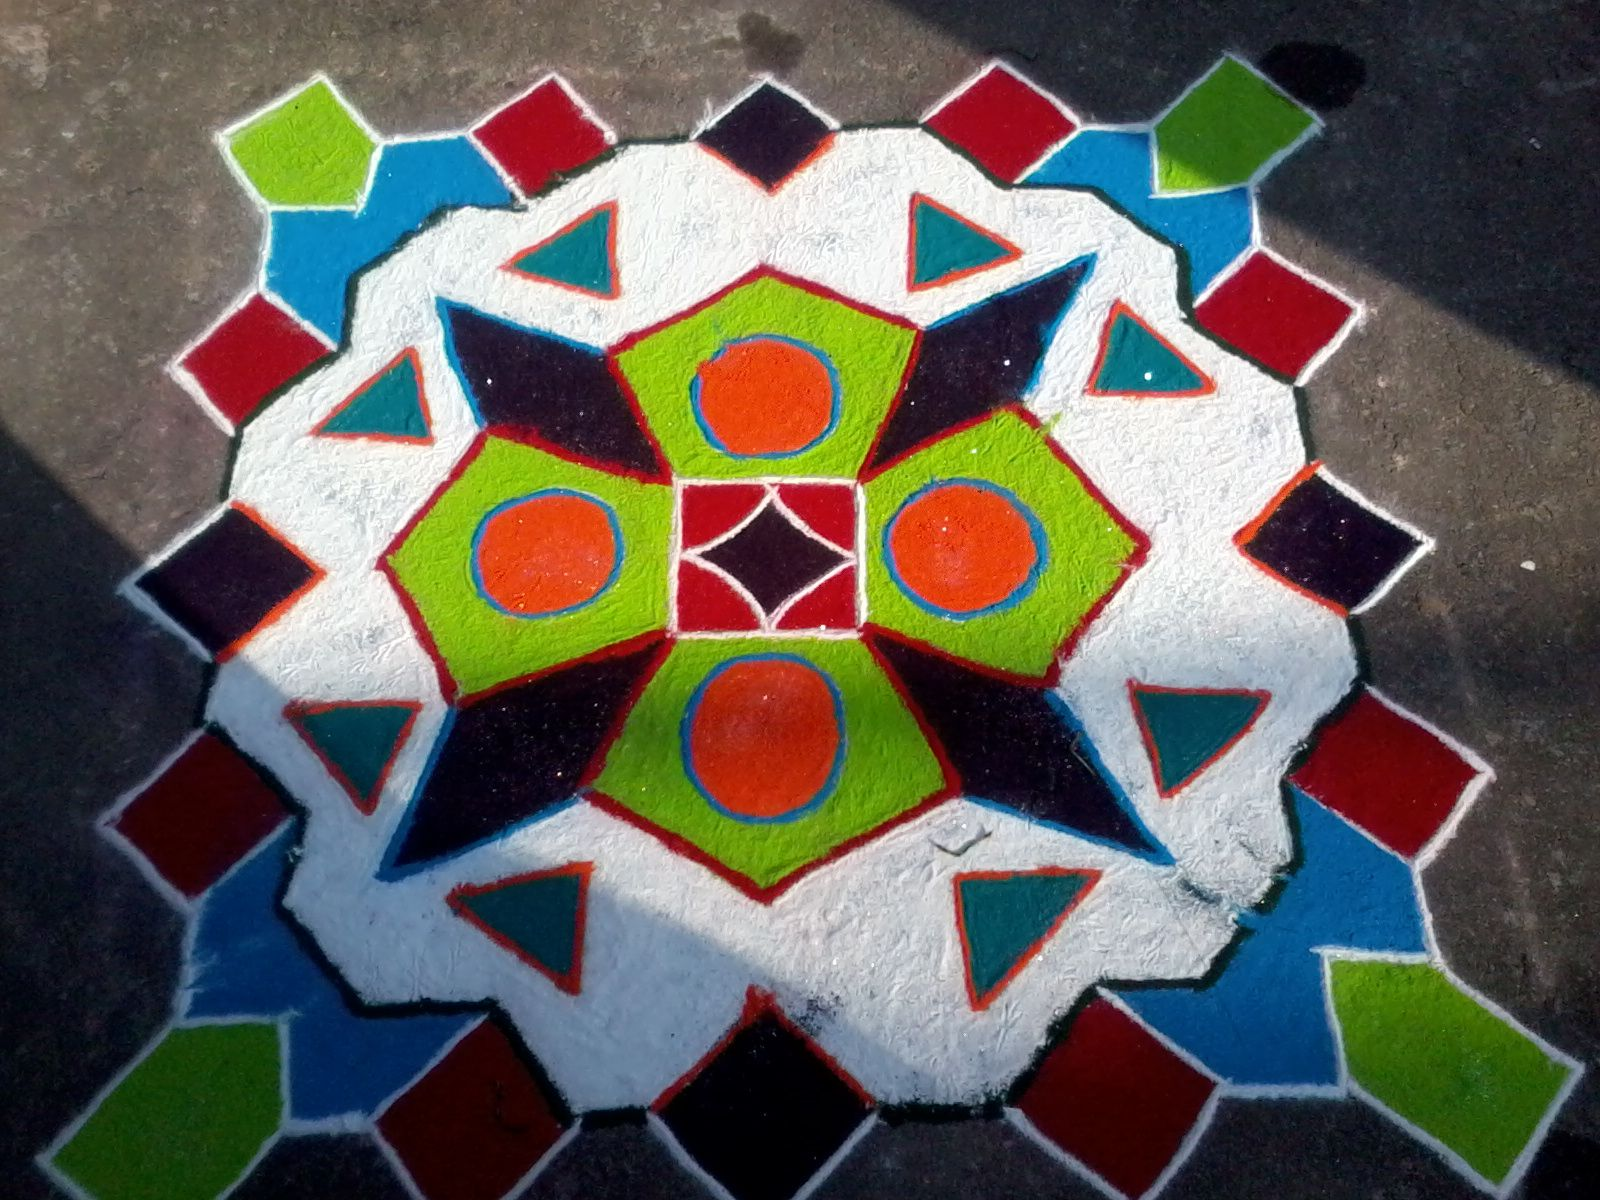 Top 10 North Indian Rangoli Designs To Try In 2019 Top 10 North Indian Rangoli Designs To Try In 2019 new picture